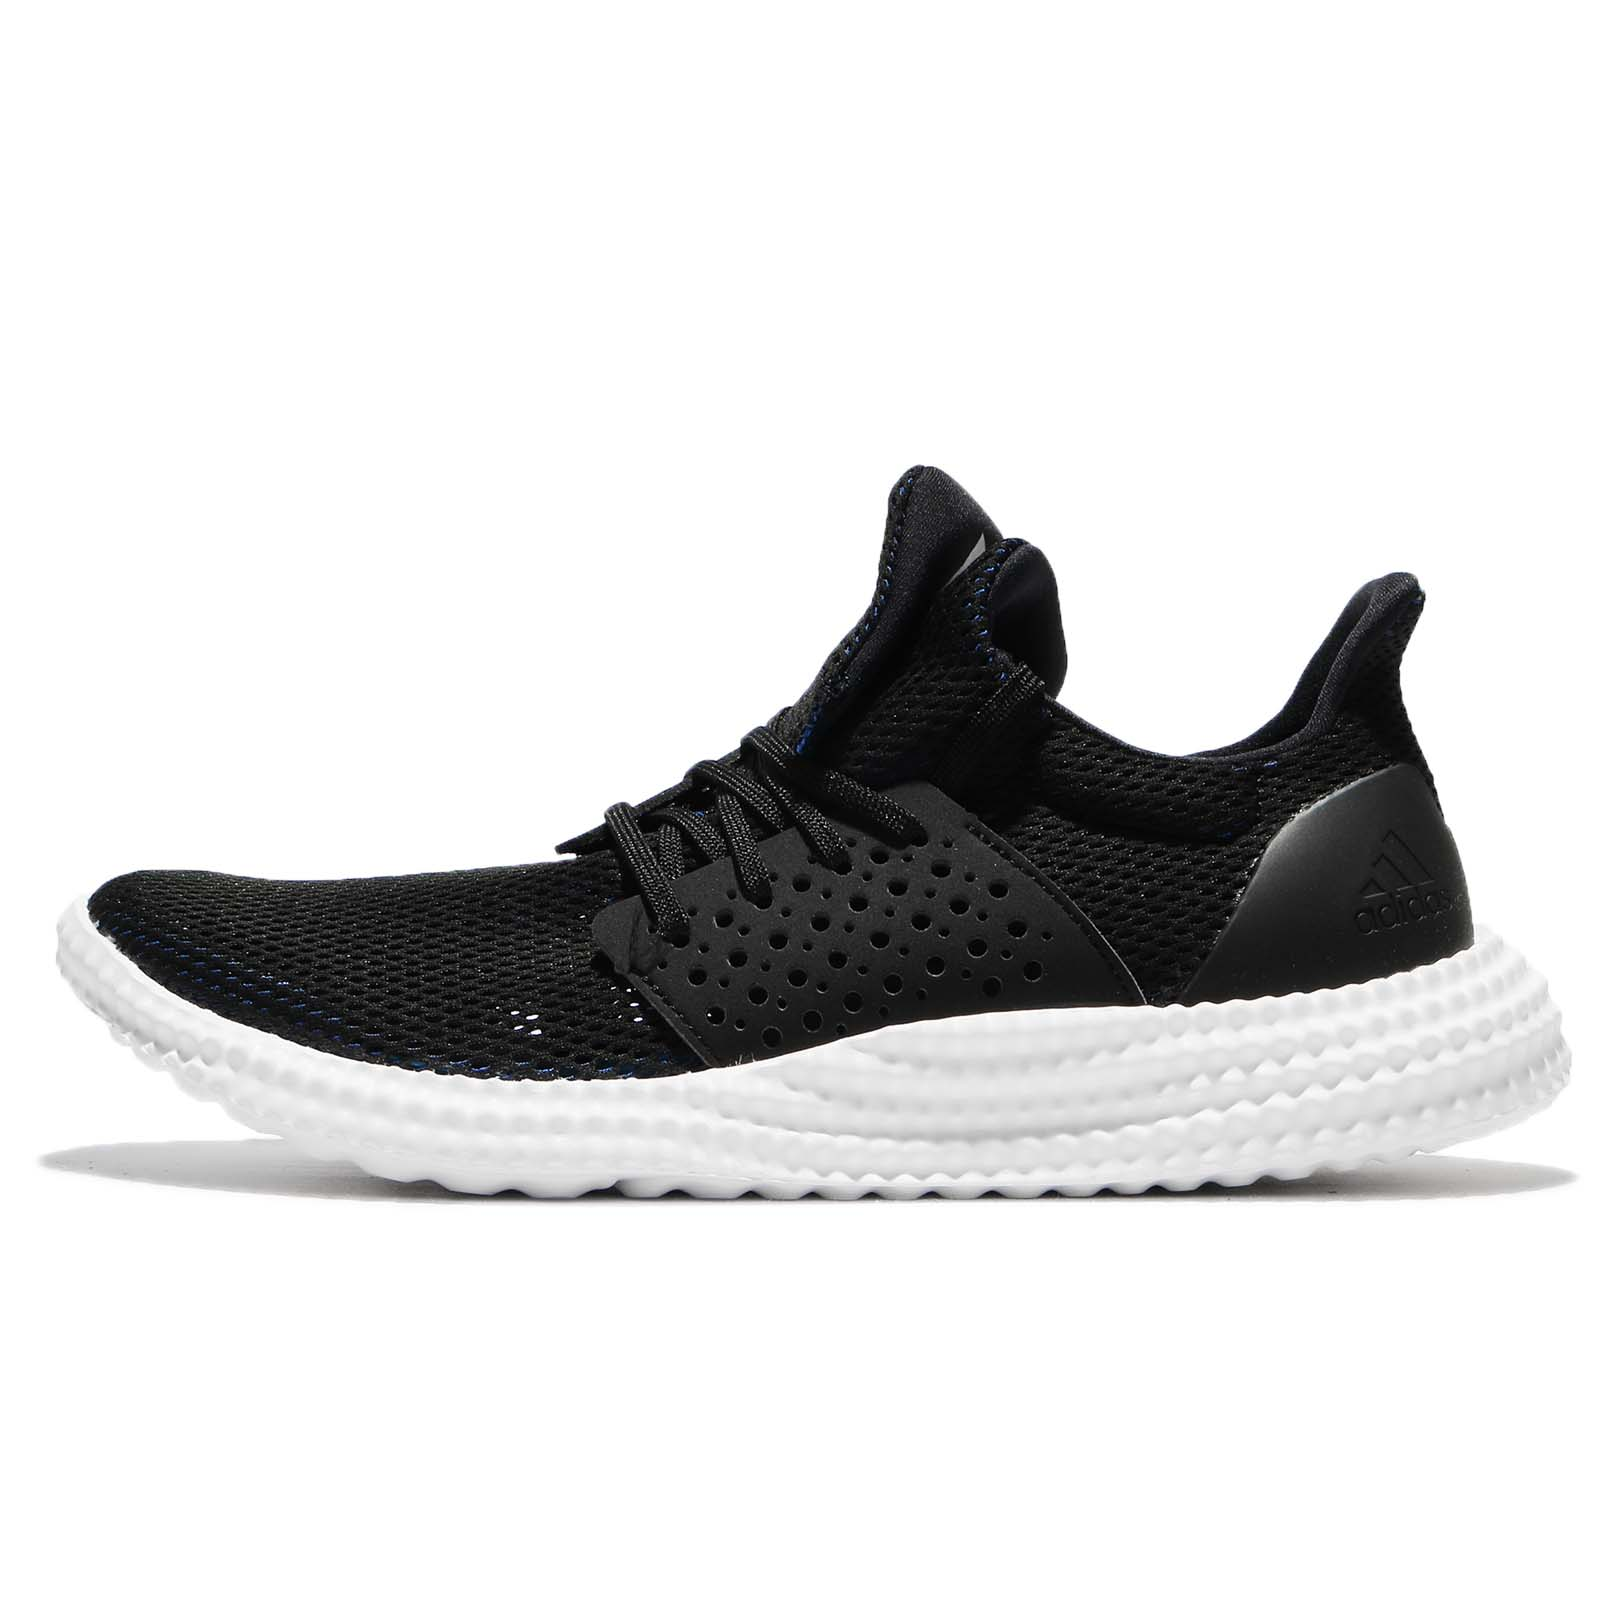 buy online d2117 0443a adidas Athletics 247 TR M Black White Men Cross Training Shoes Sneakers  CG3448